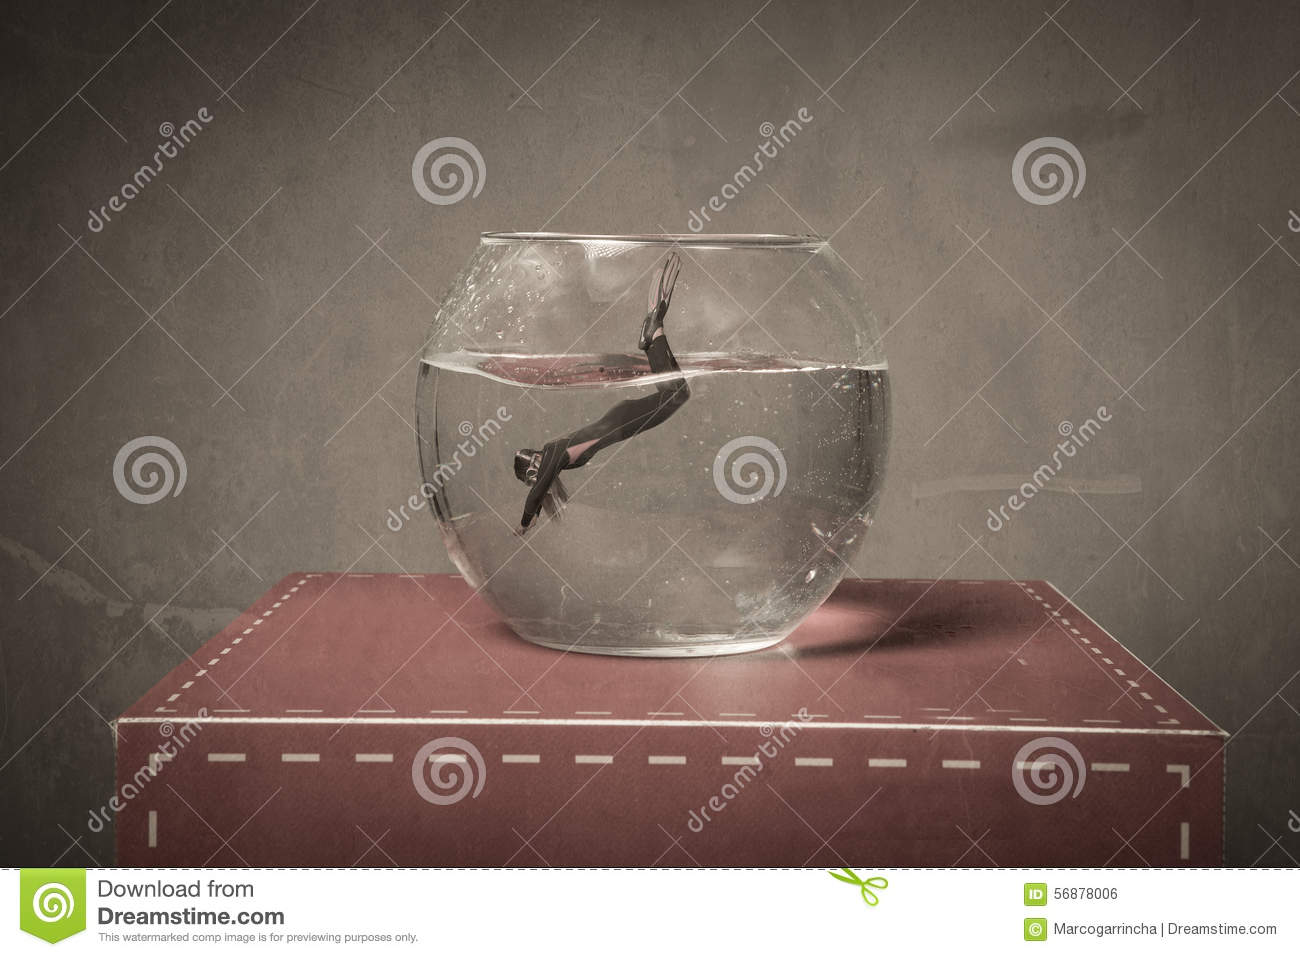 Immersion in a fish bowl